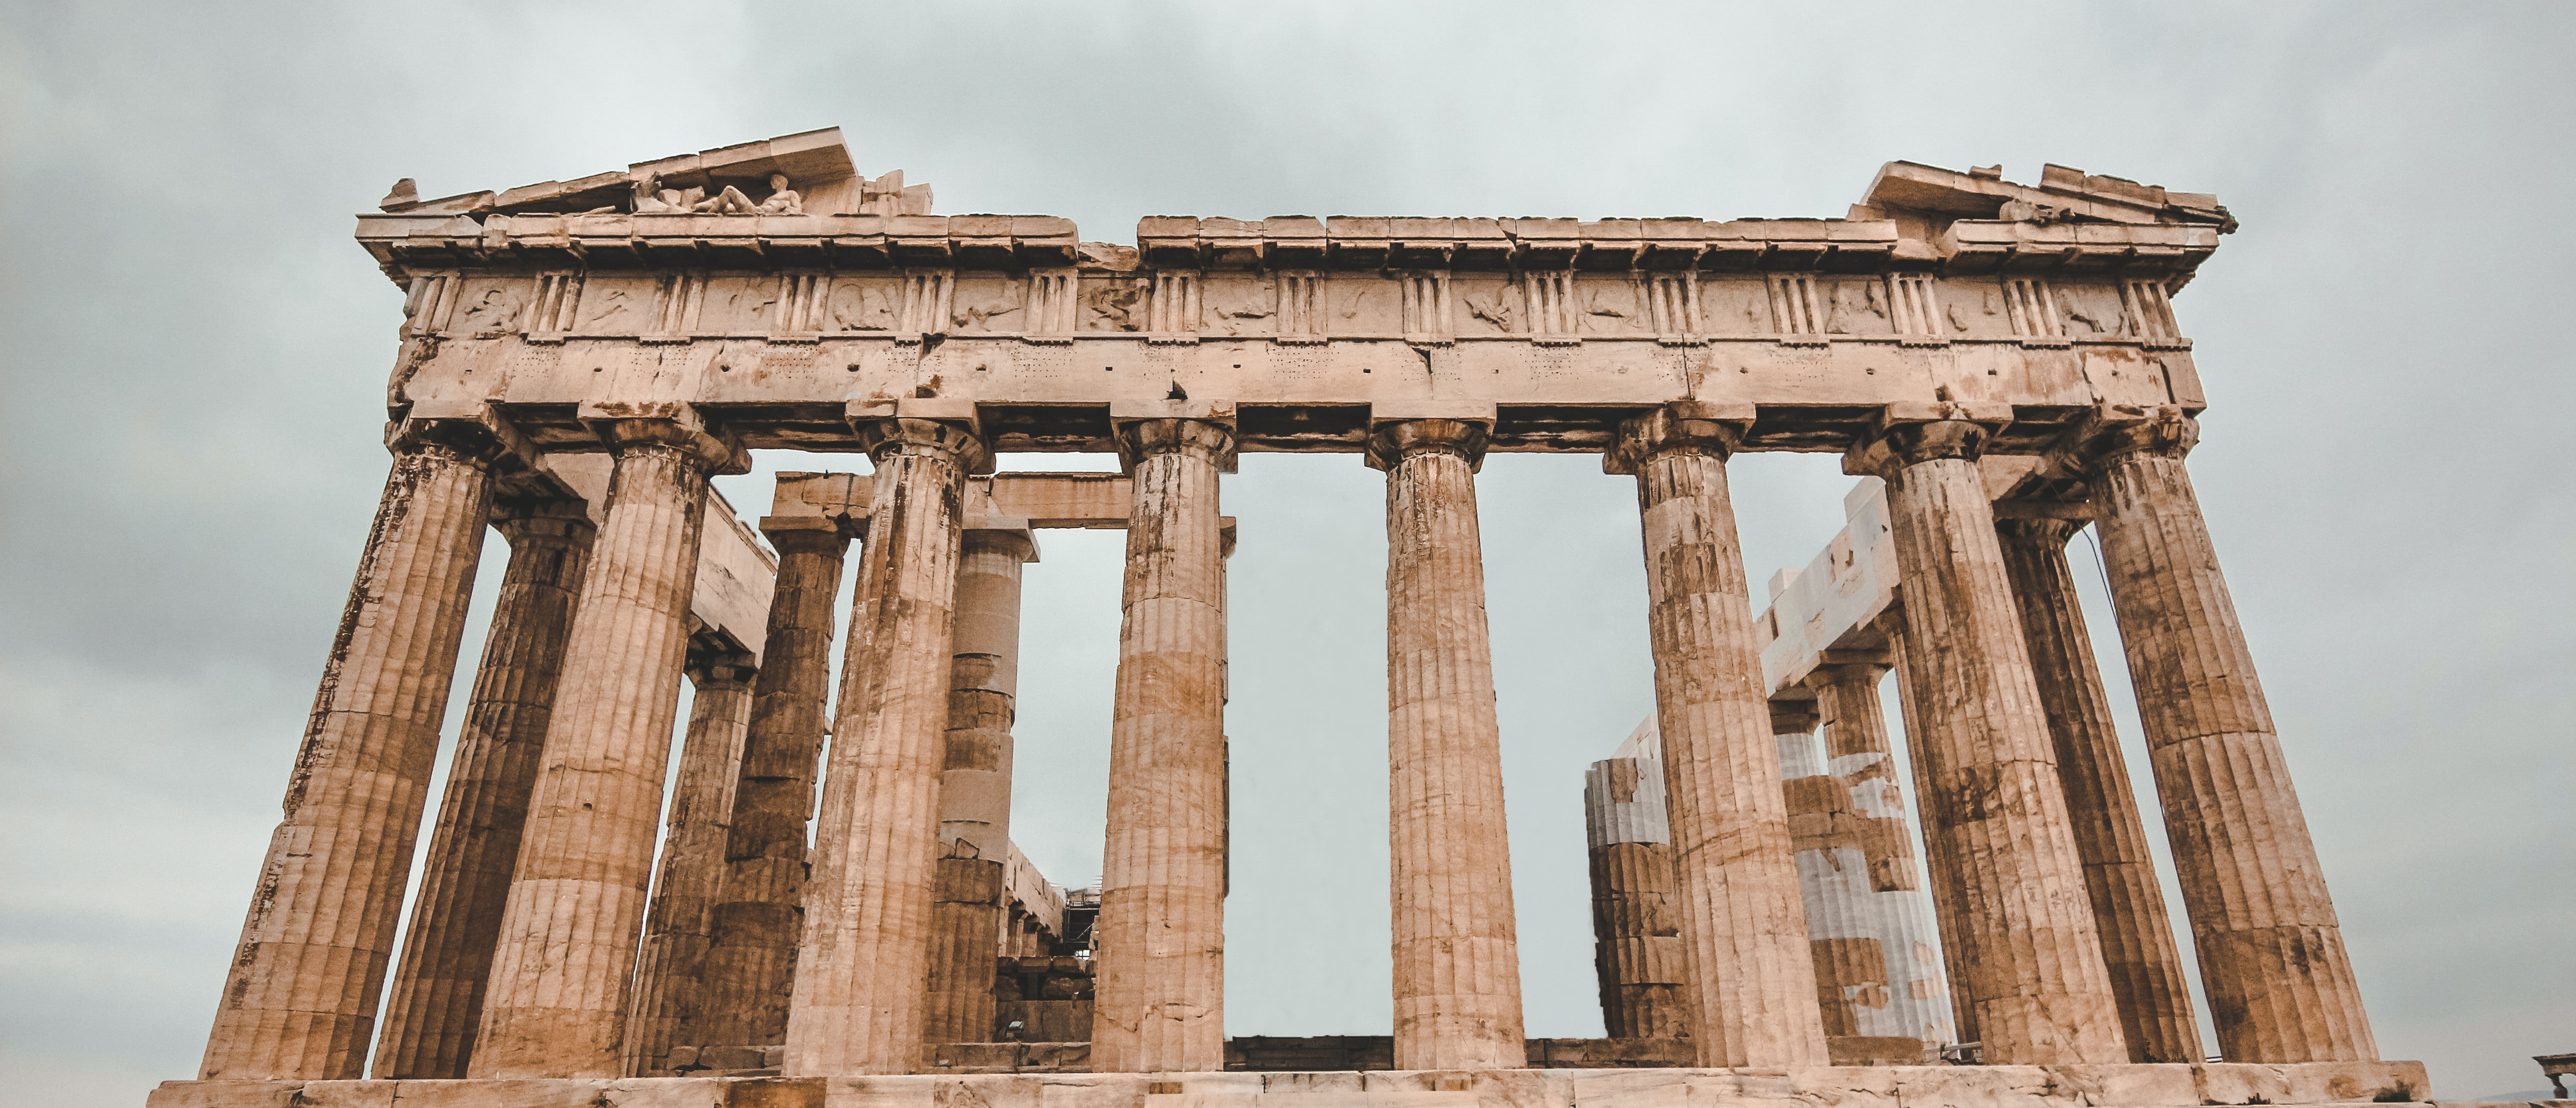 Parthenon, Athens, Instagrammable Spots In Greece